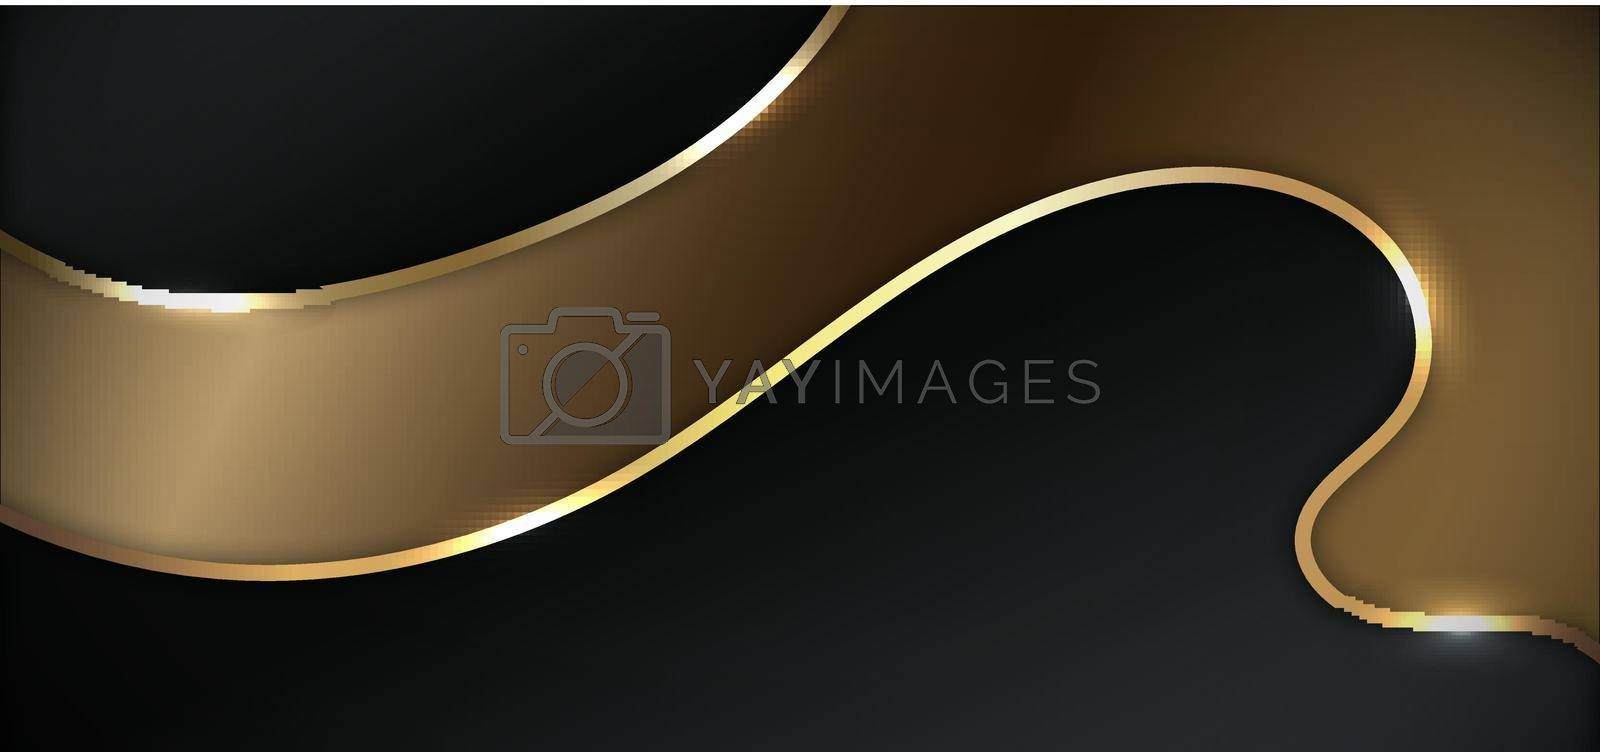 Royalty free image of Abstract black and gold wavy layers curve shape background luxury style by phochi